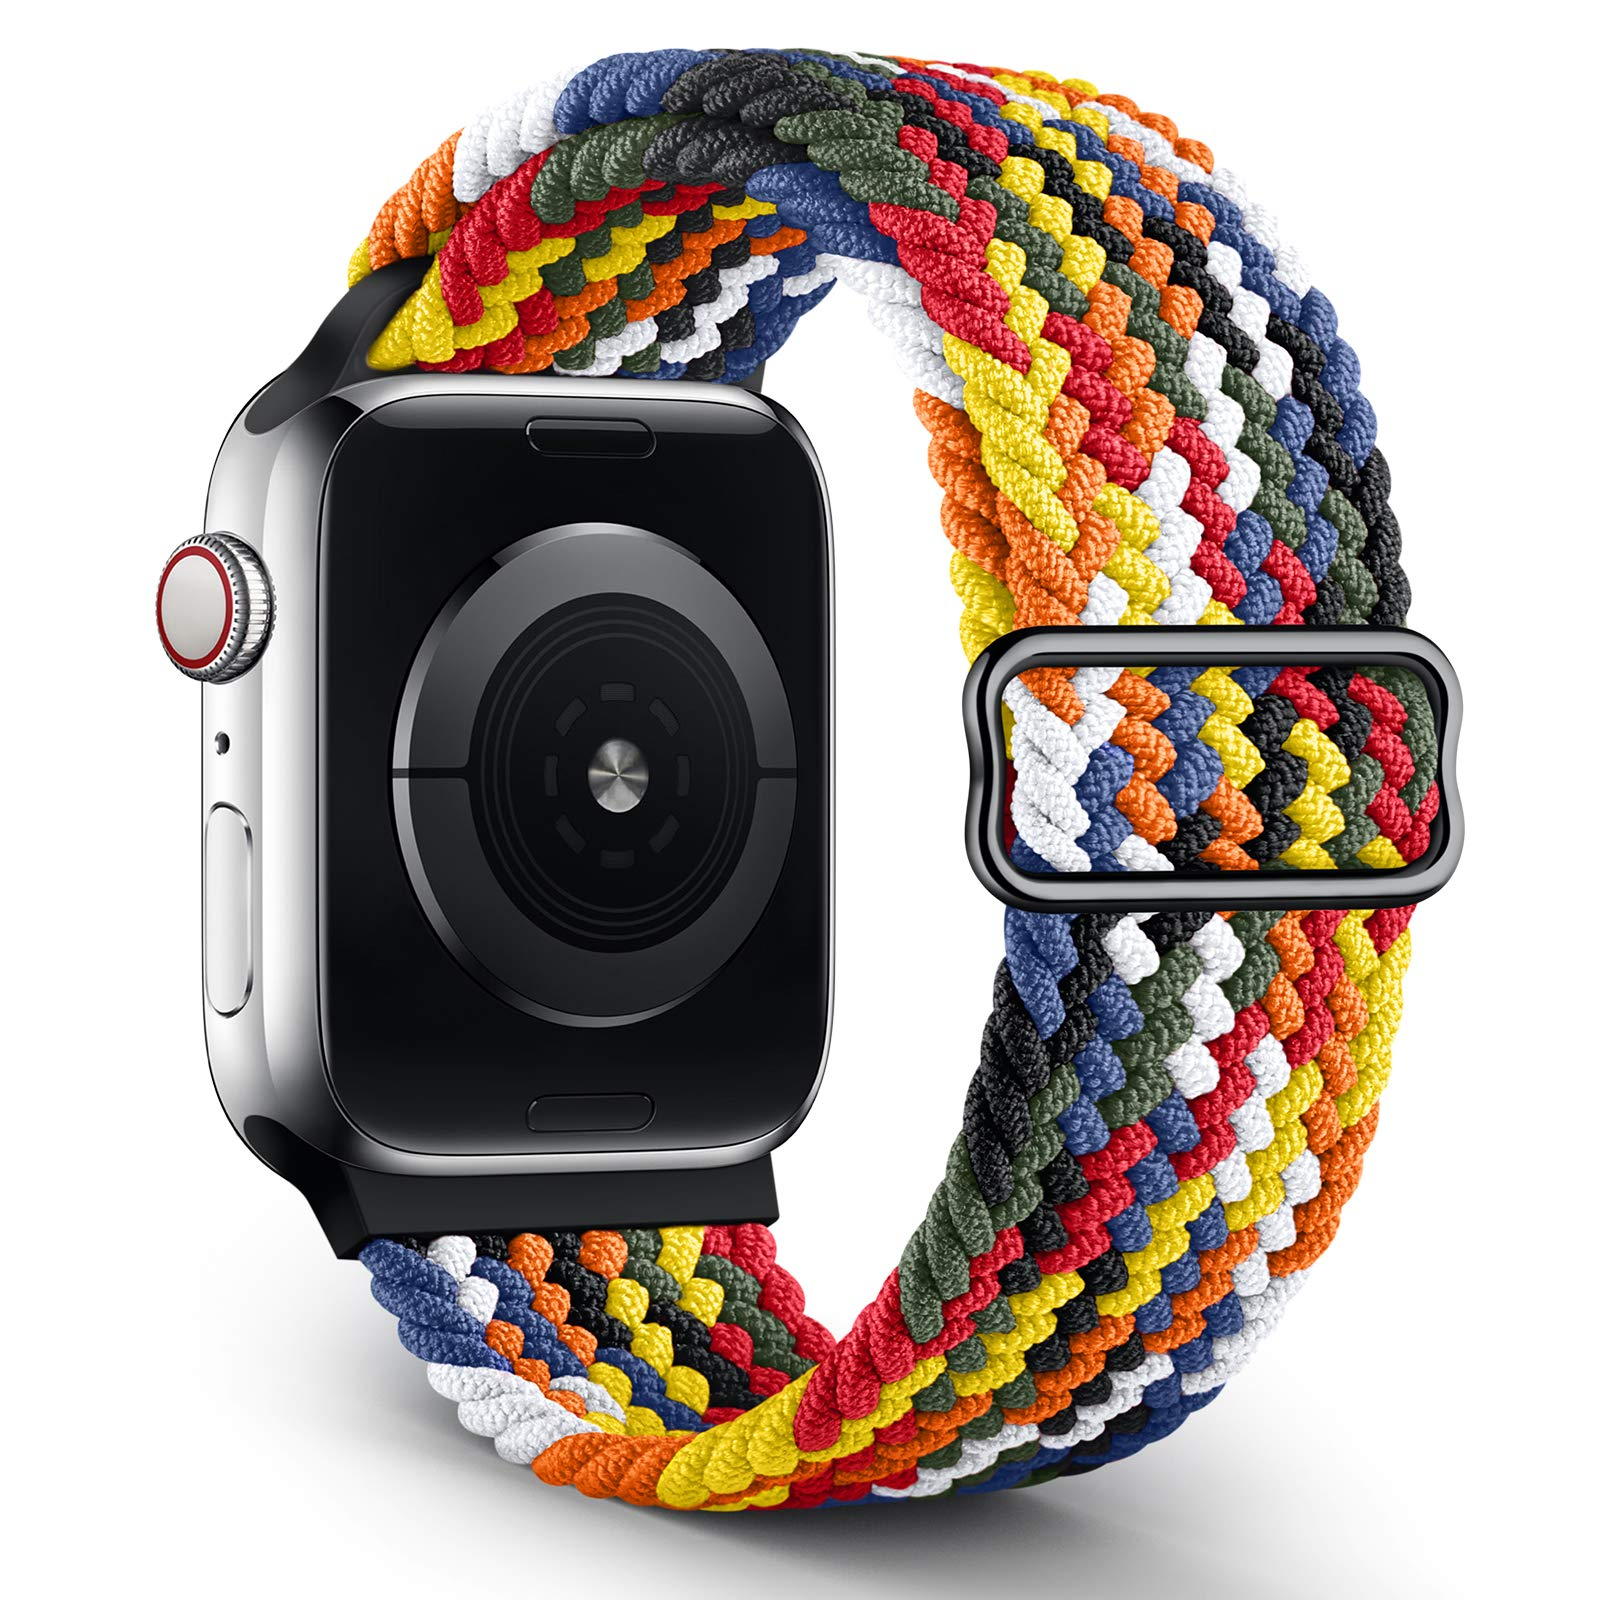 OYODSS Braided Solo Loop Sport Band Compatible with Apple Watch Bands 38mm 40mm 42mm 44mm, Adjustable Soft Stretchy Elastic Wristband Compatible with iWatch Series 6/5/4/3/2/1/SE Women Men 38mm/40mm